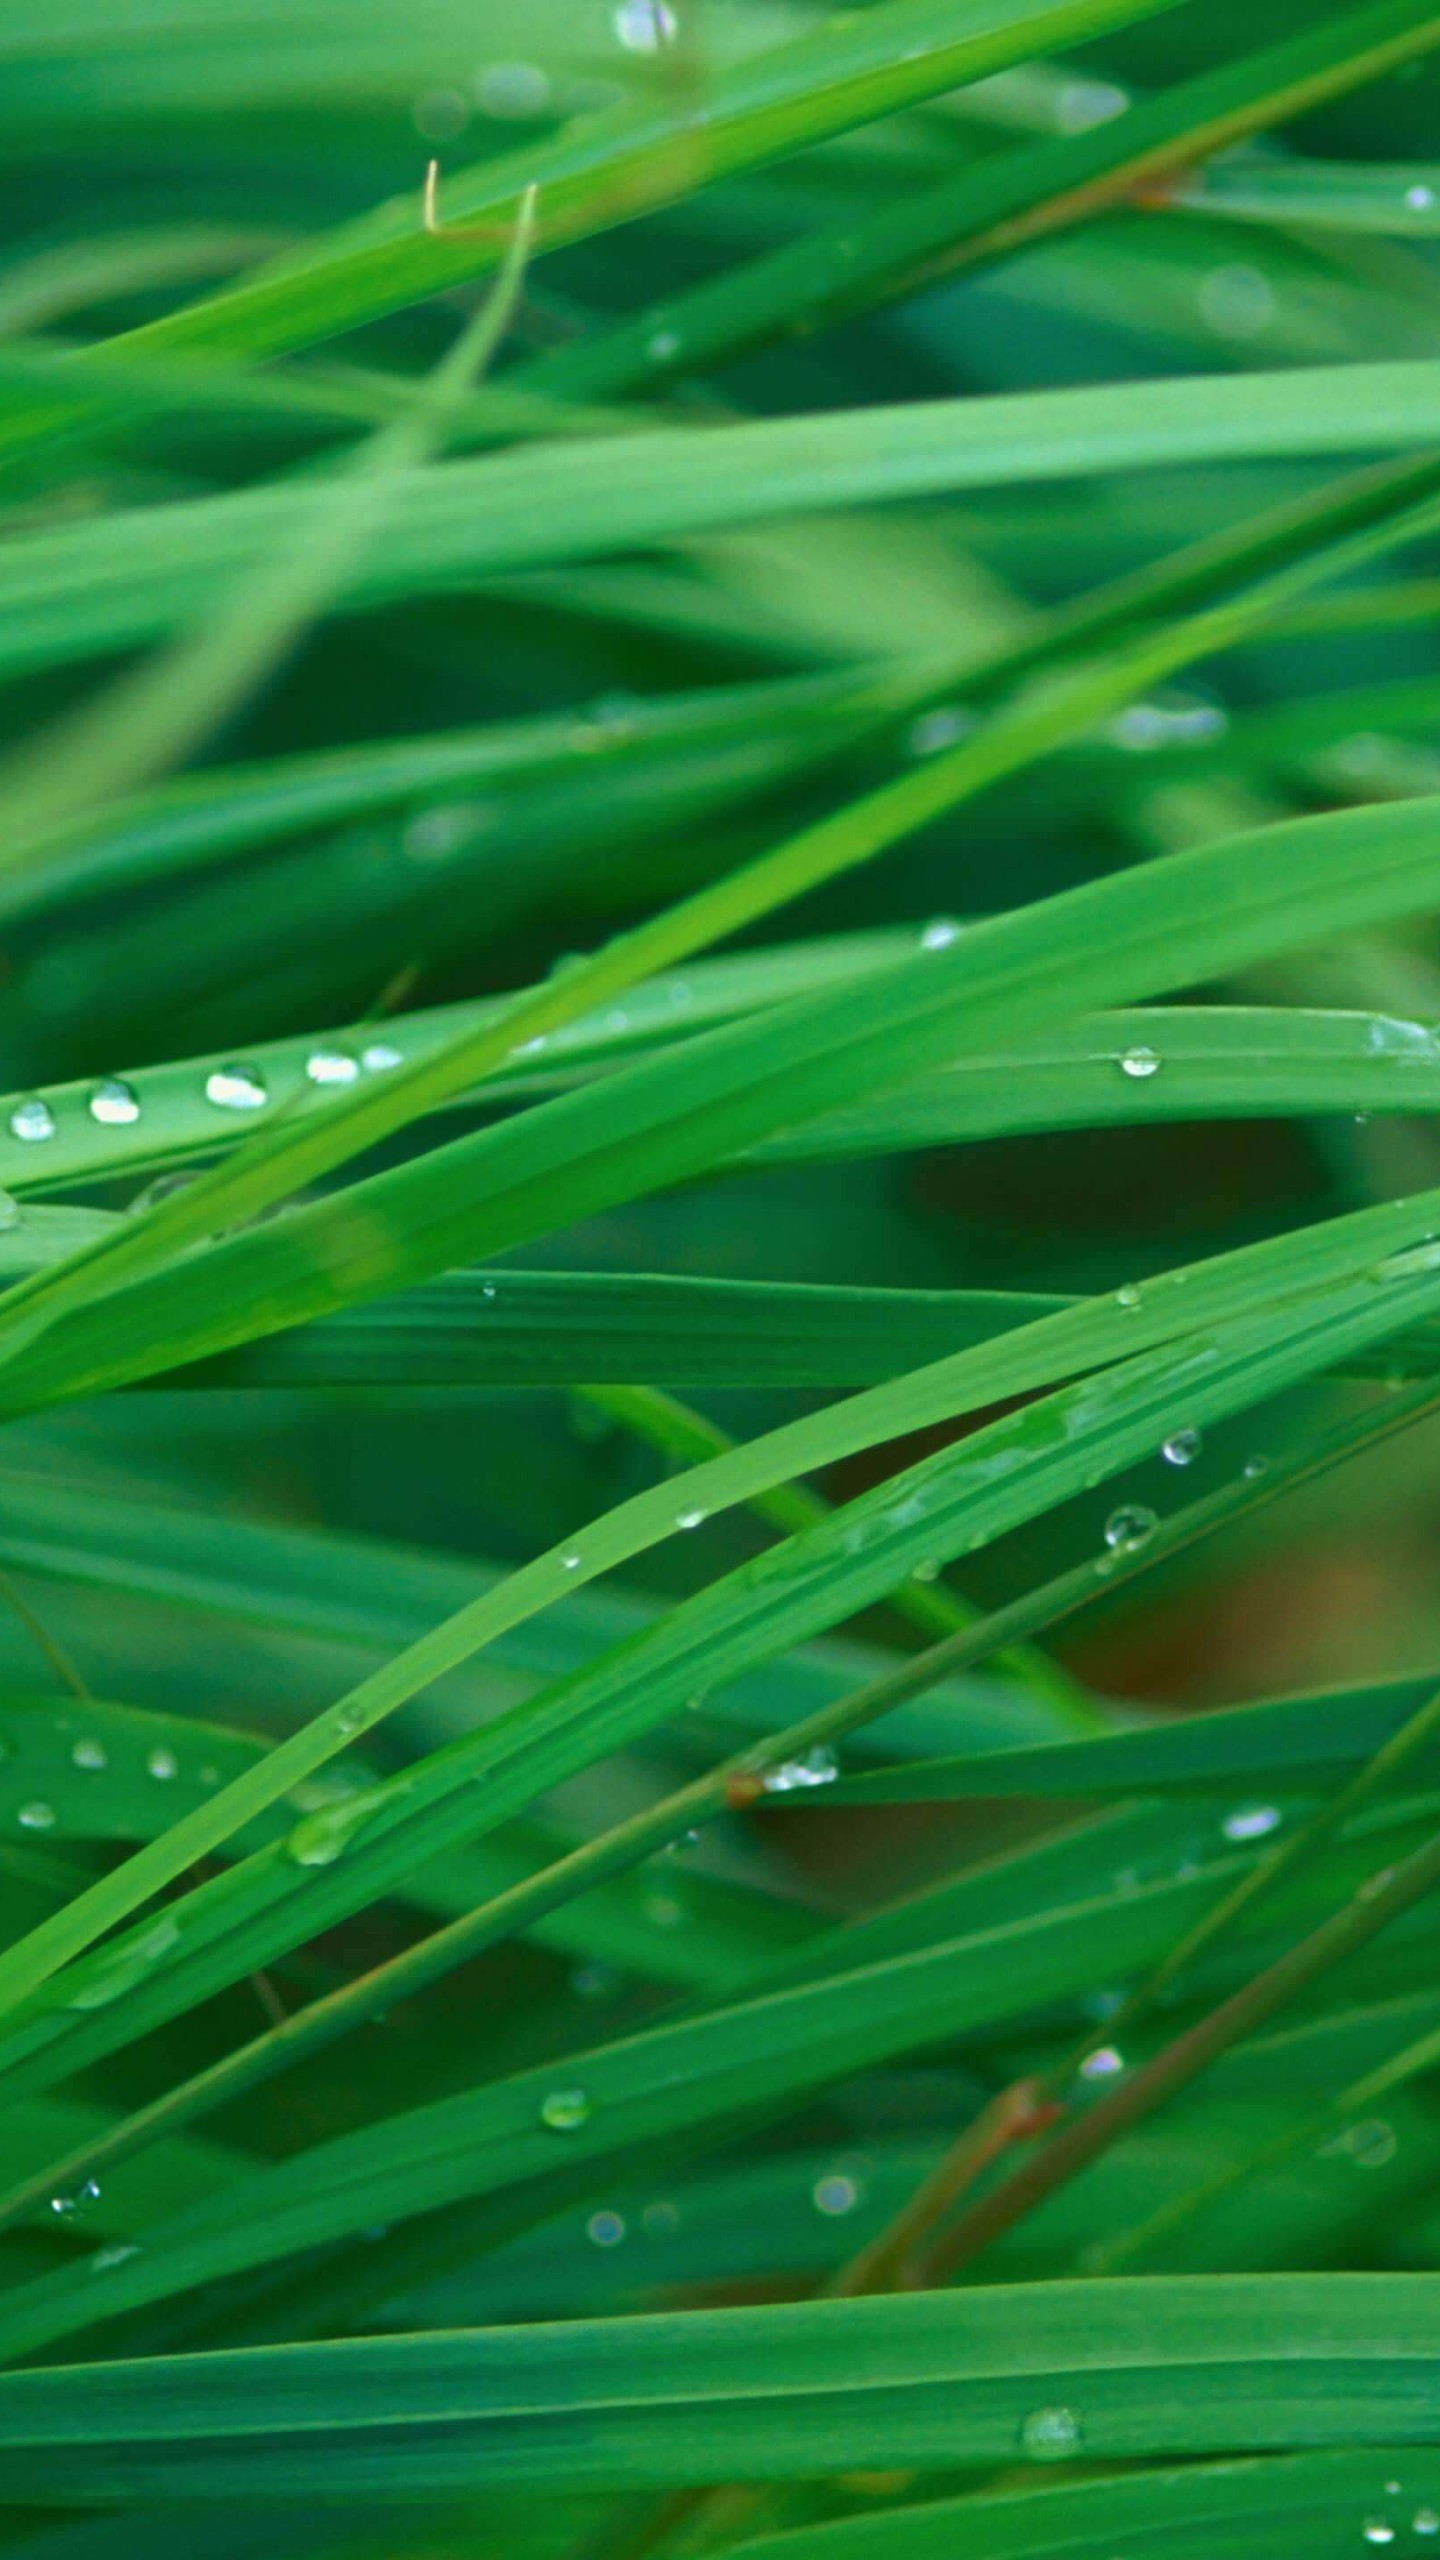 Green Blades Of Grass Wallpaper for SAMSUNG Galaxy S6